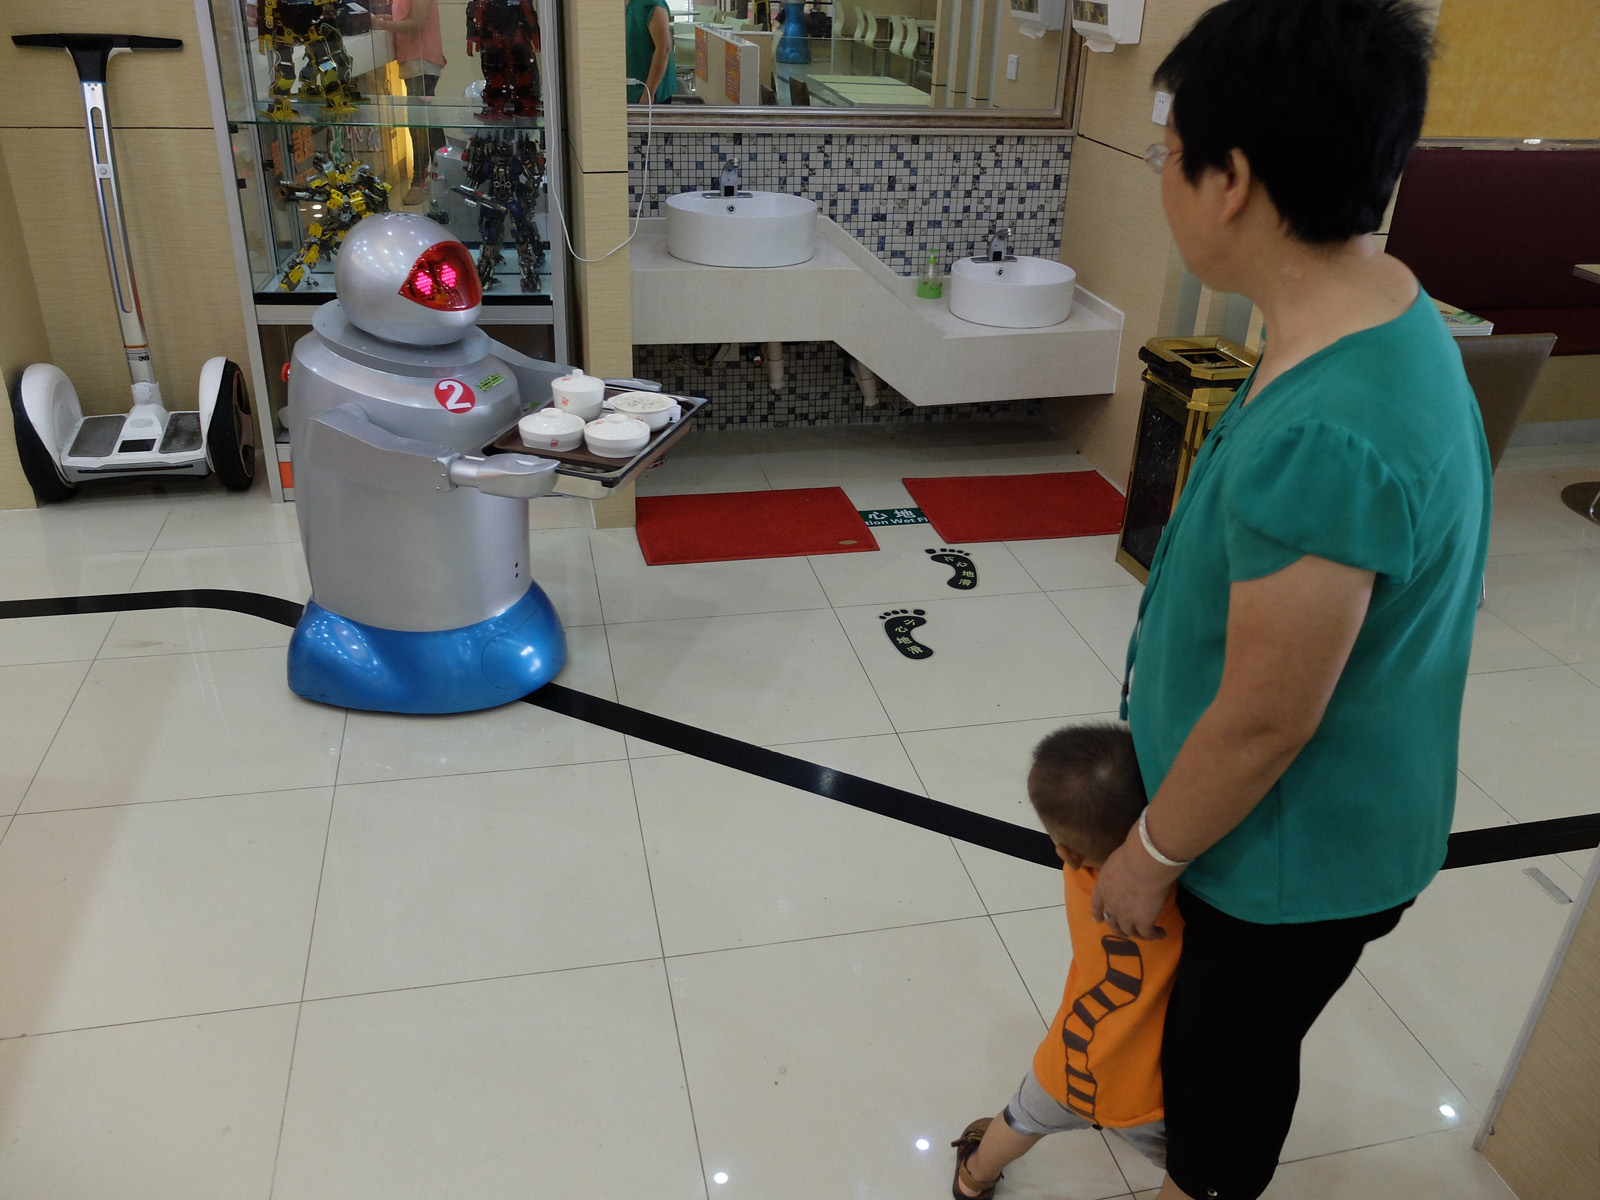 Kid scare of robot